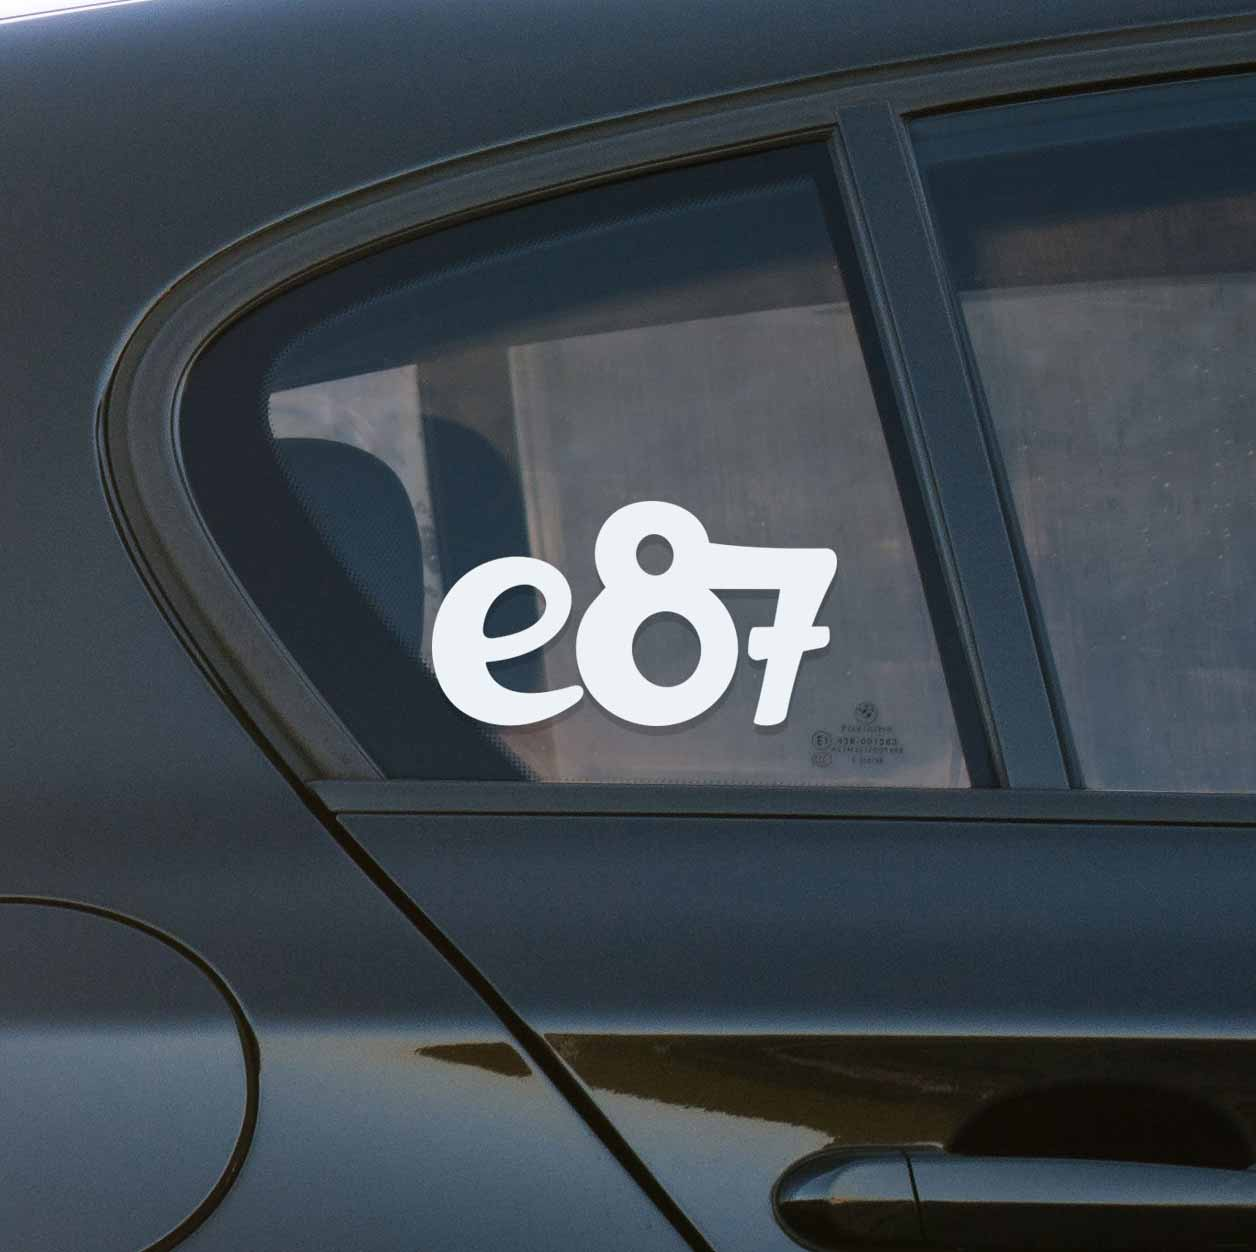 Sticker for BMW e87. Available in different colors. Contour cut from premium outdoor vinyls. Never fades out.